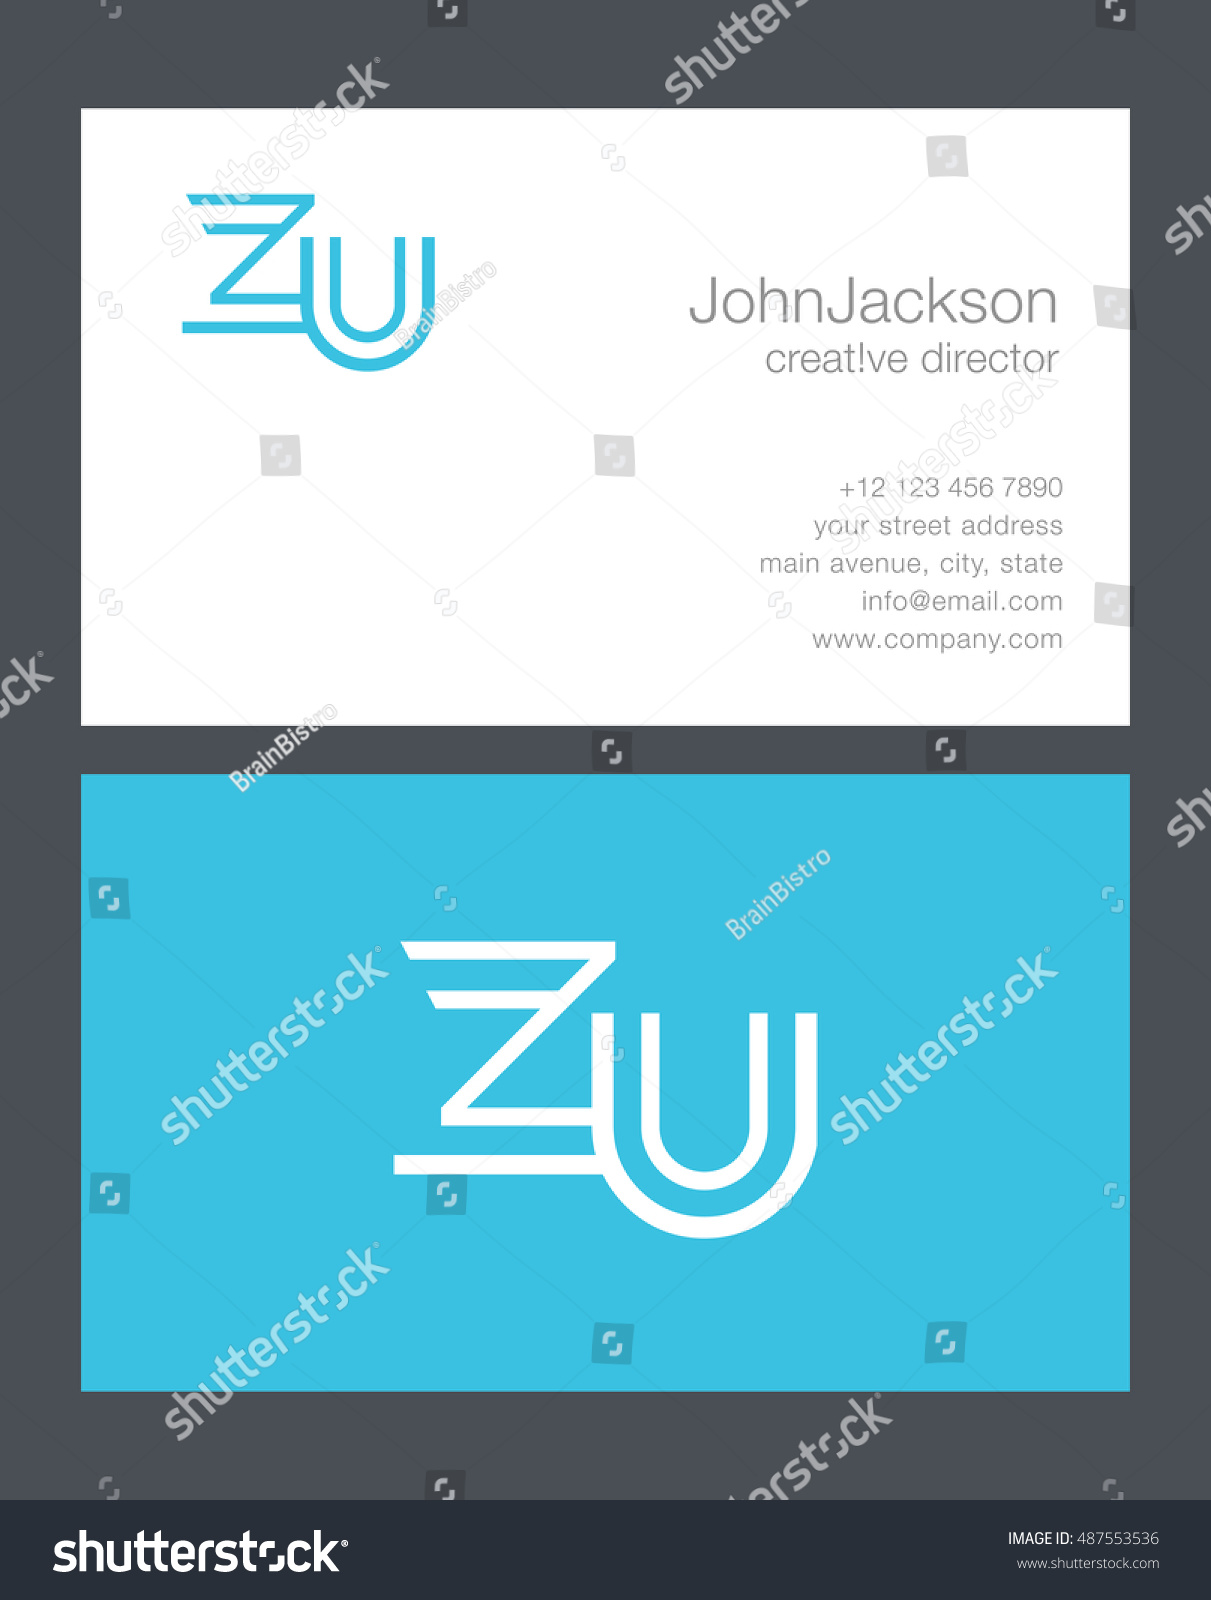 Great 1 Page Resumes Small 10 Envelope Template Indesign Round 100 Day Plan Template 10x13 Envelope Template Youthful 16x20 Collage Template Gray18th Birthday Invitation Templates Z U Letter Logo Business Card Stock Vector 487553536   Shutterstock